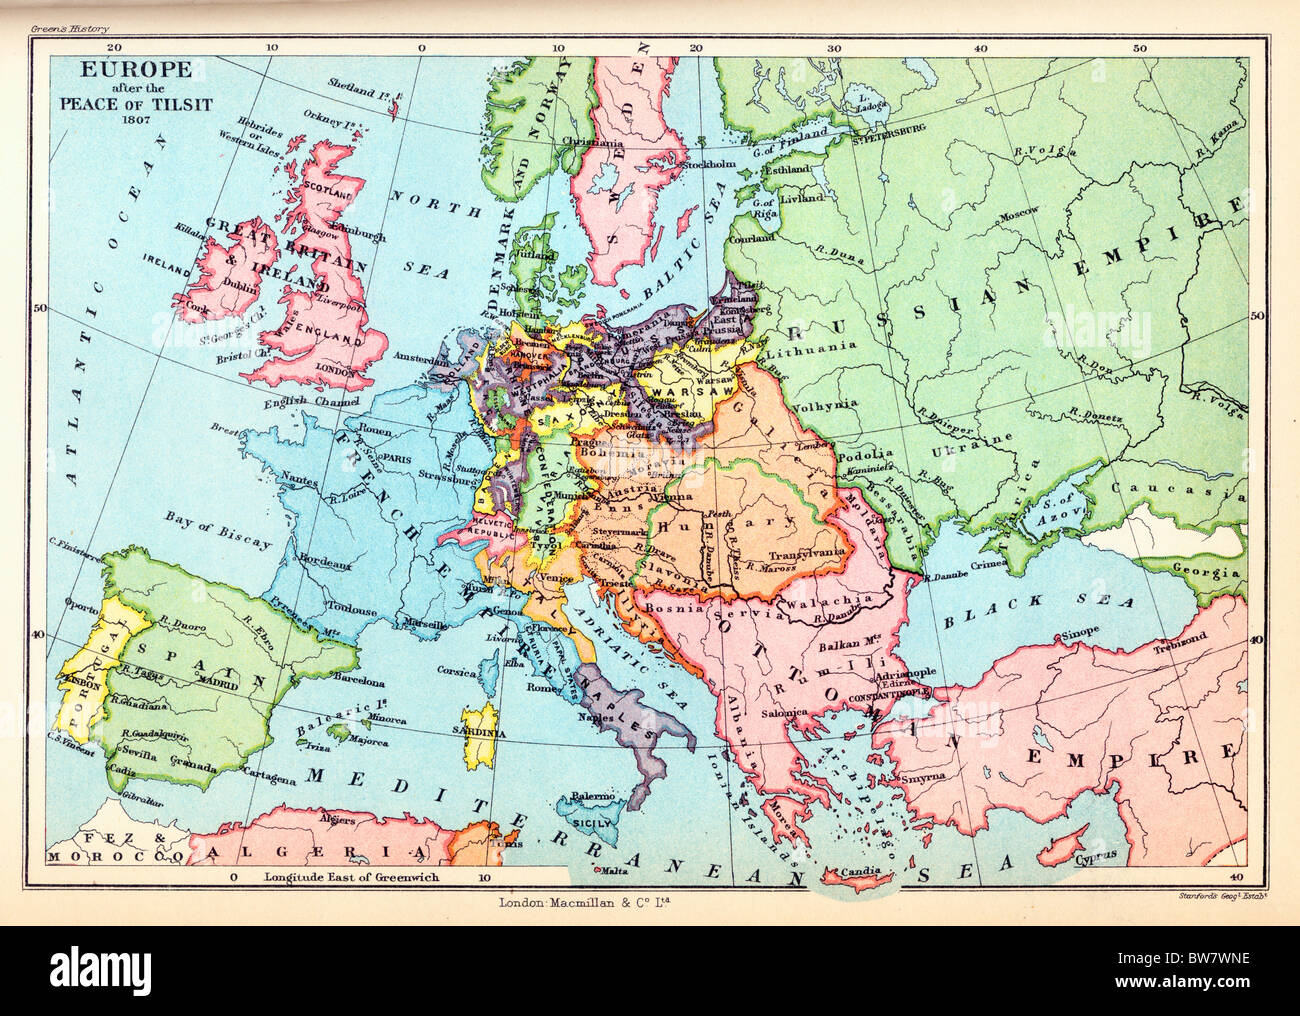 A Map of Europe after the Peace of Tilsit, 1807; Colour Illustration; - Stock Image